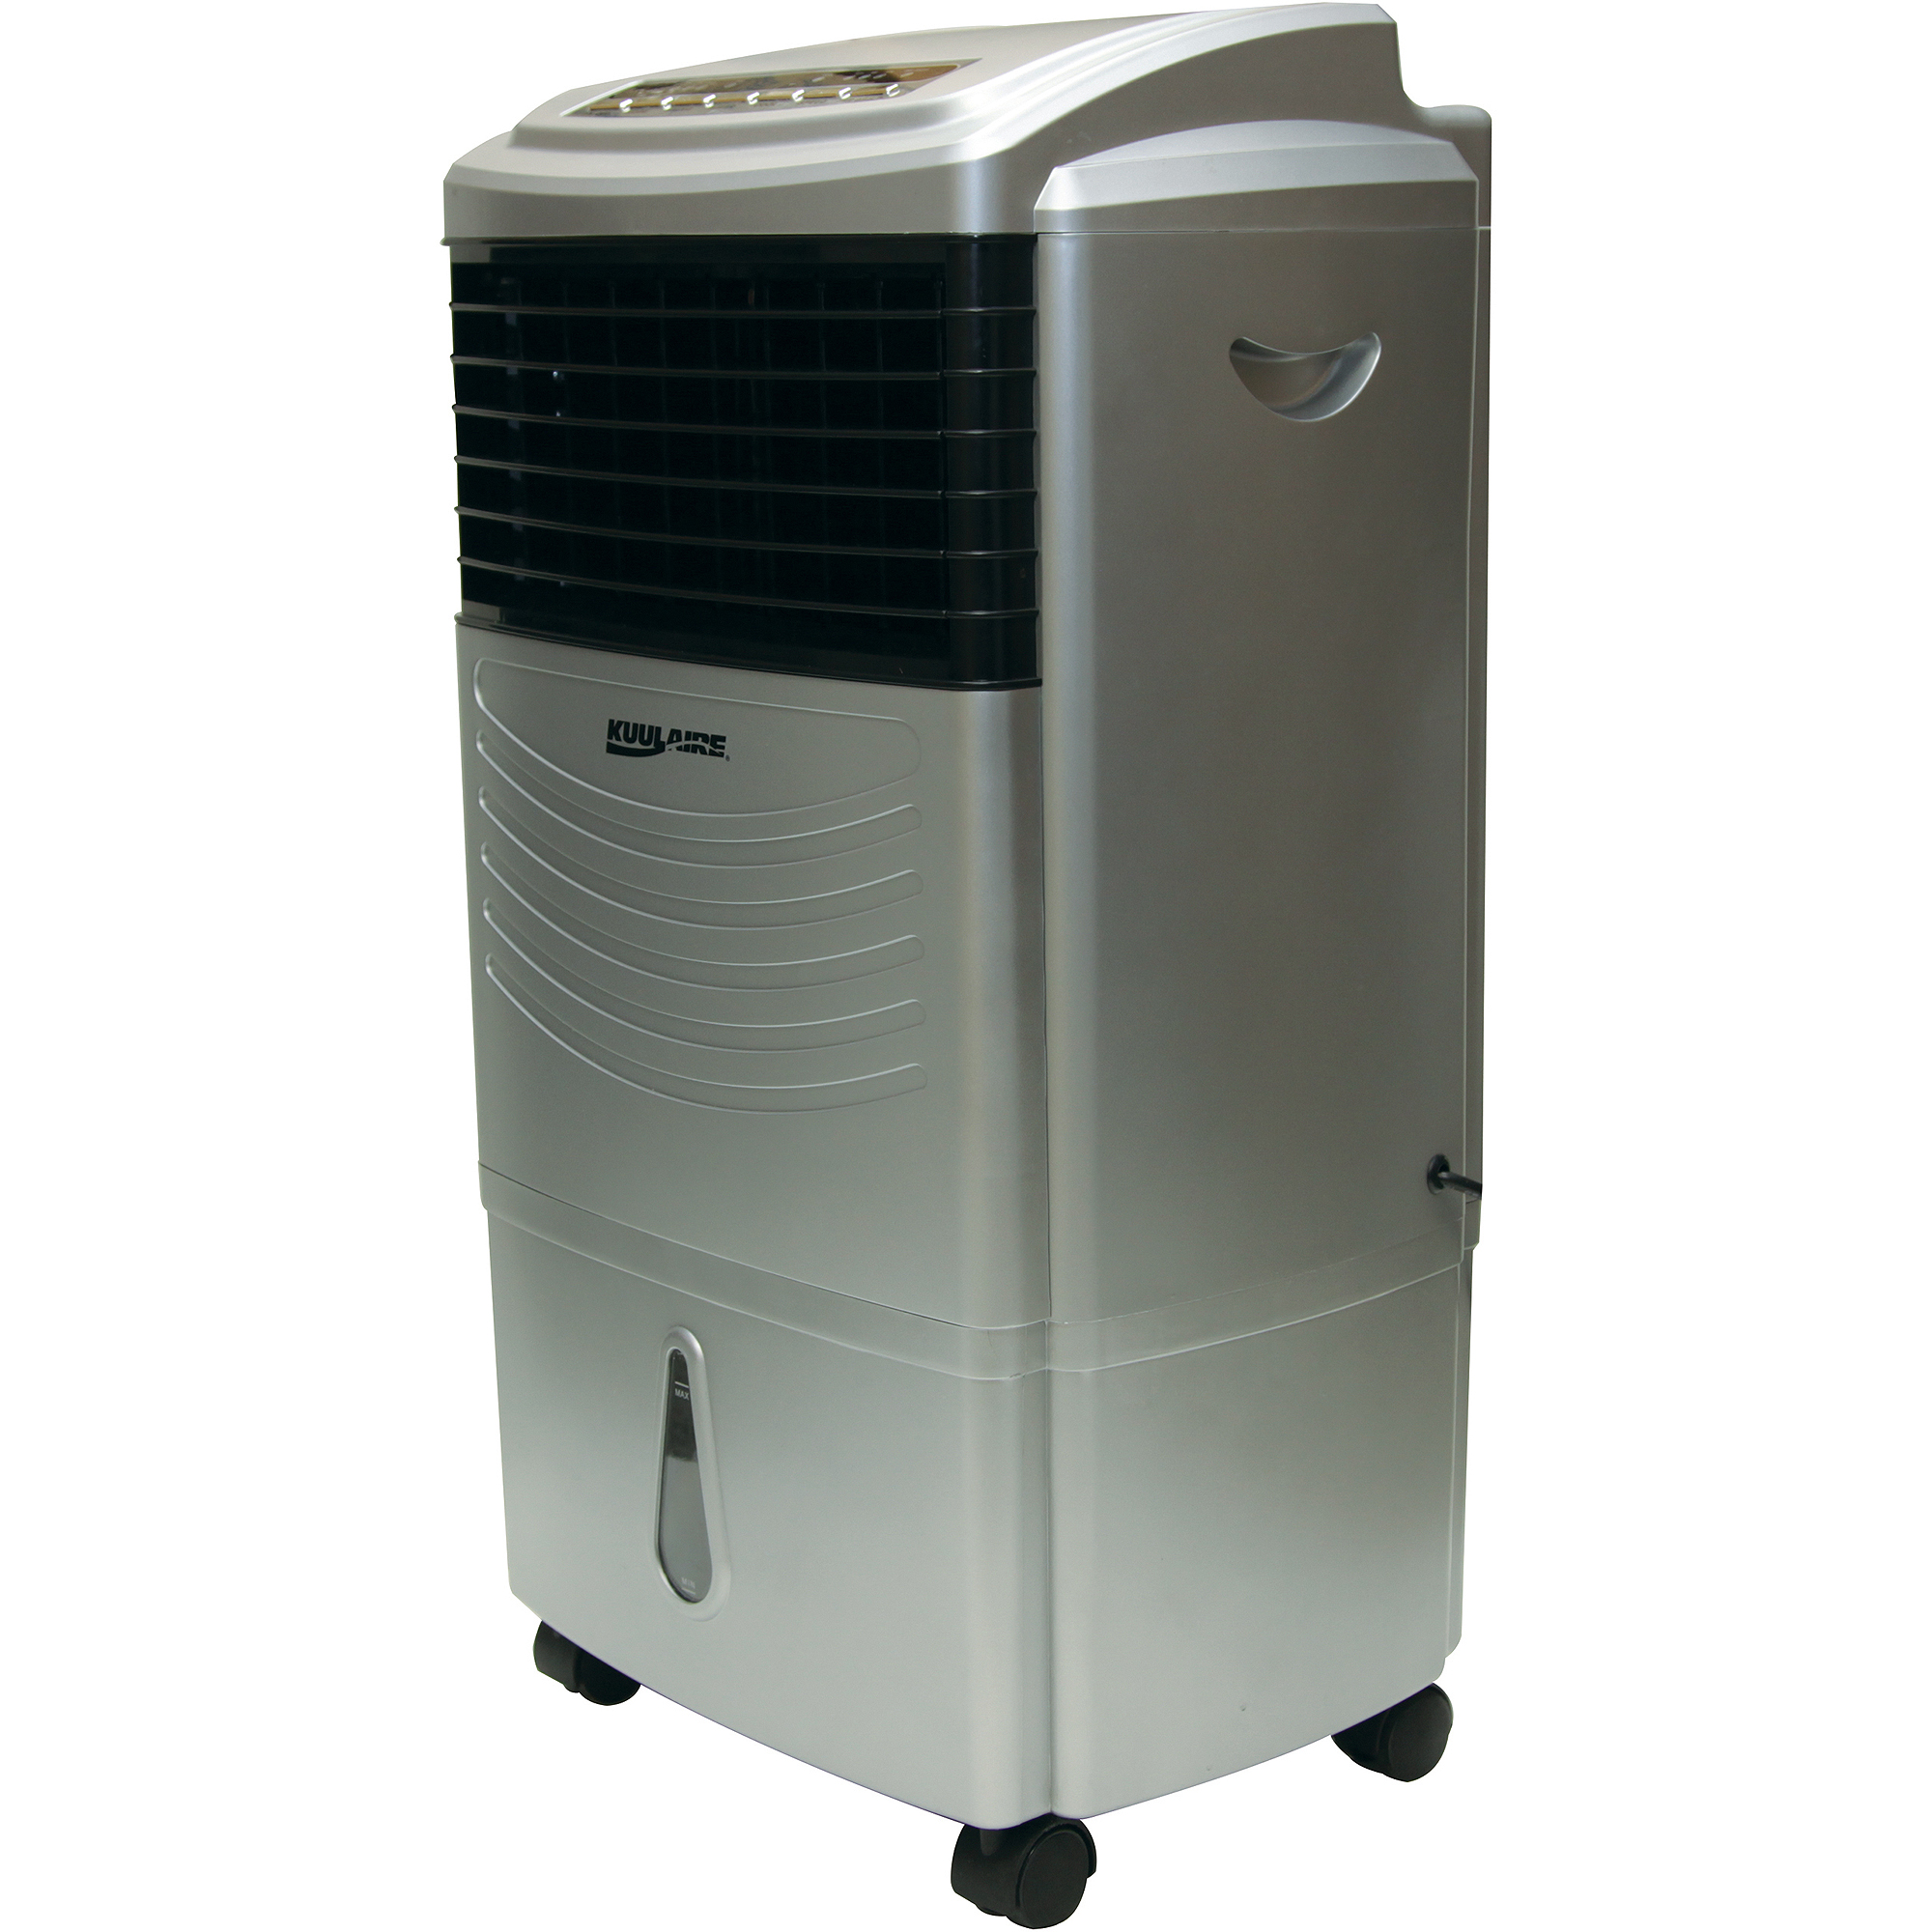 Port-A-Cool KuulAire PACKA44 Portable Evaporative Cooling Unit with 175 sq ft Cooling Capacity, Silver